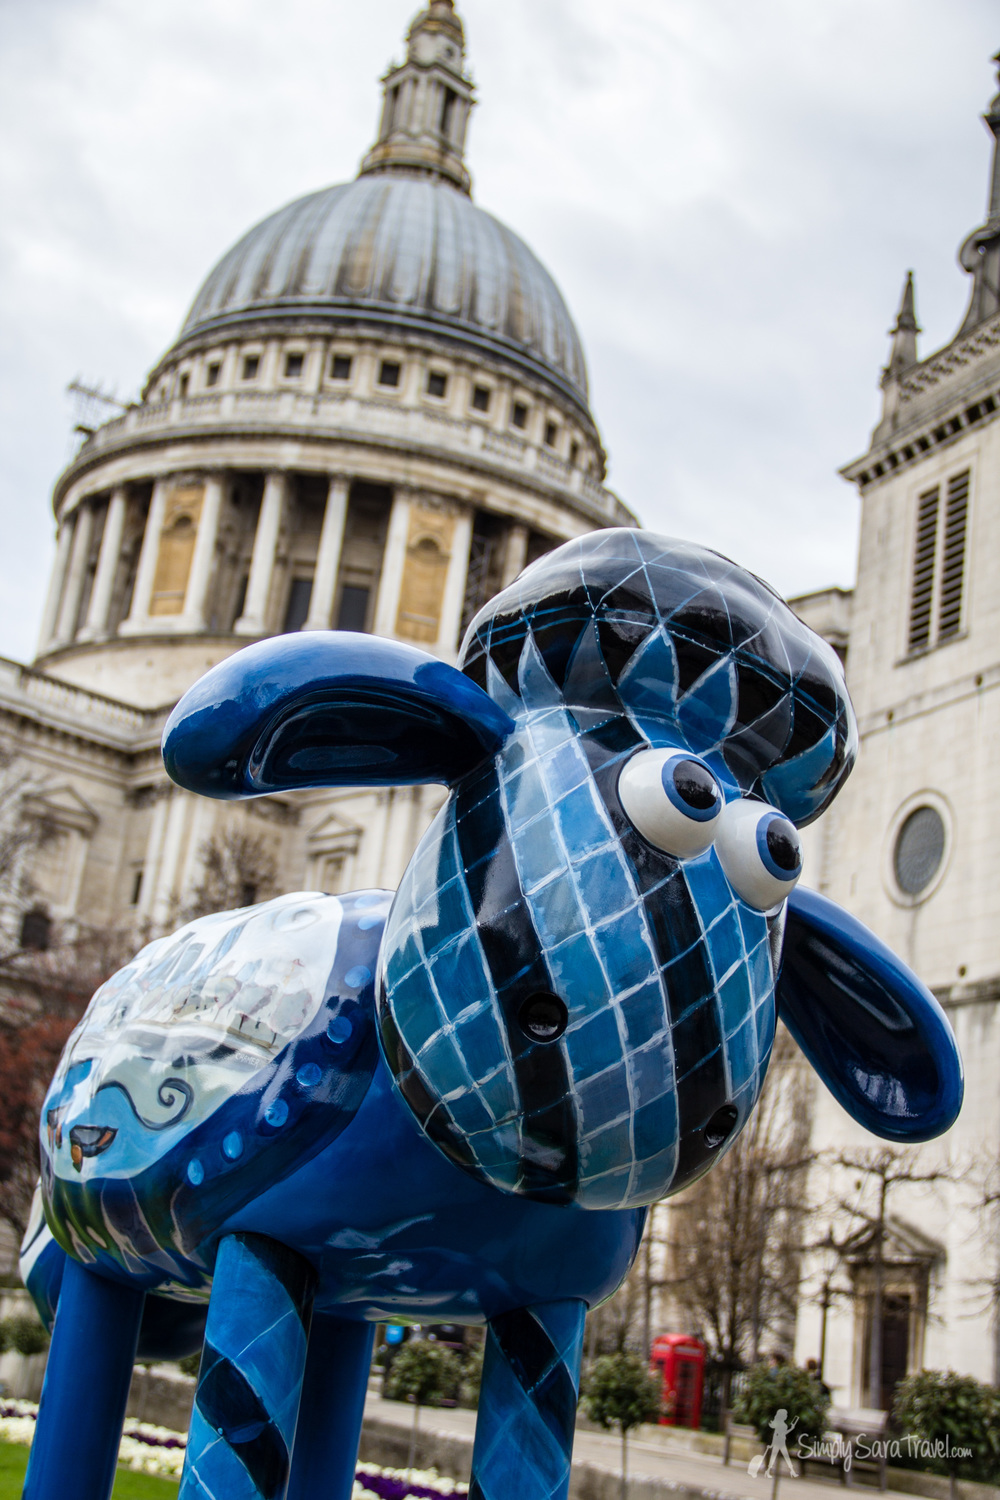 Did I mention I was in London during an art exhibit featuring sheep all over the city?! As I've hinted at before, any city that has sheep of some sort gets bonus points in my book! [This expo moved to Bristol, England where you can see Shaun the Sheep until the end of August 2015!]